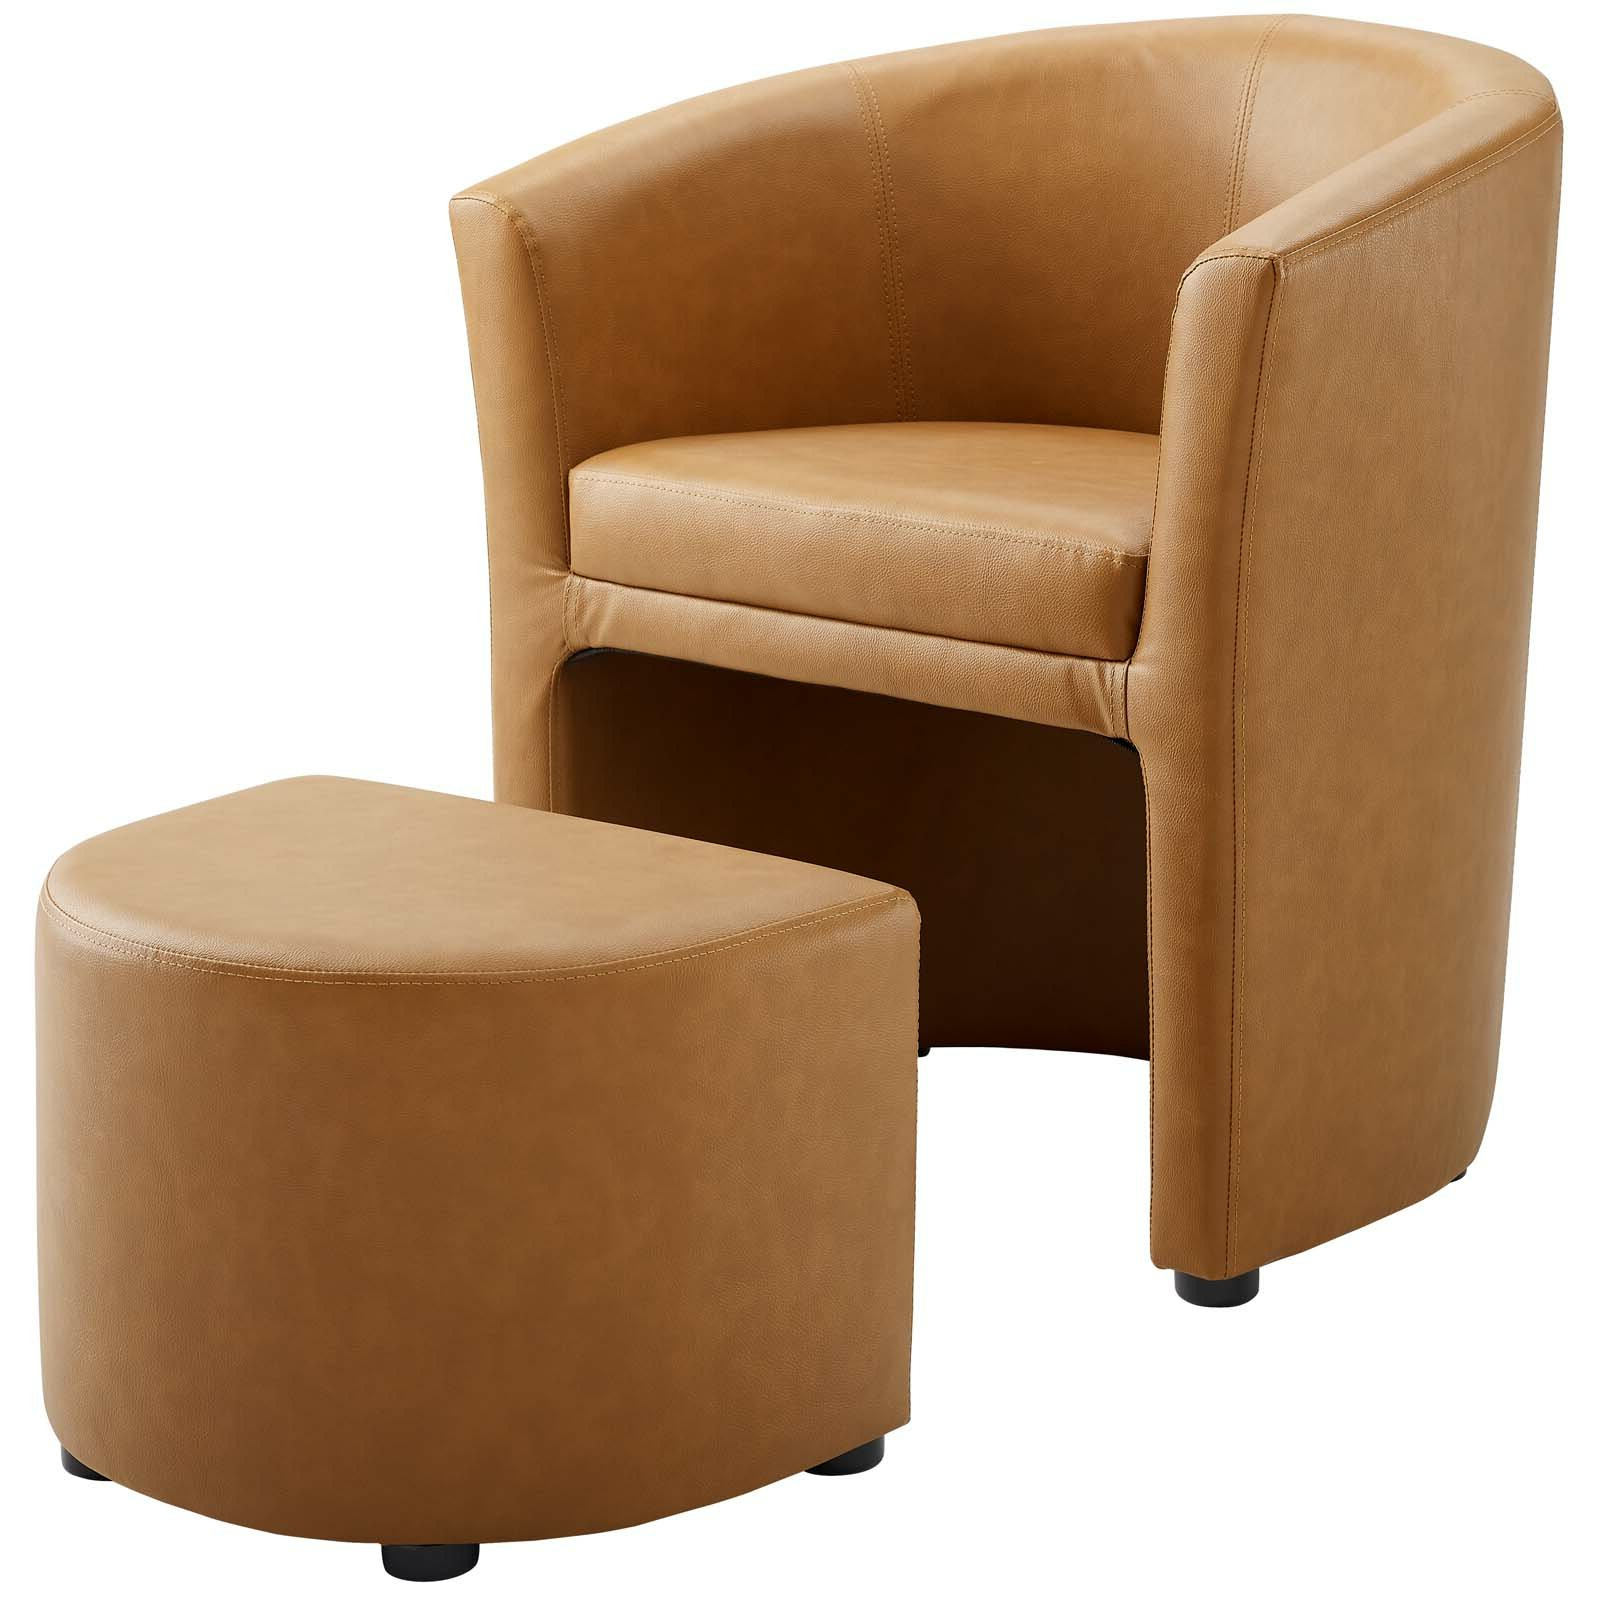 """Darvin 28"""" W Faux Leather Barrel Chair And Ottoman In Recent Faux Leather Barrel Chair And Ottoman Sets (View 7 of 20)"""